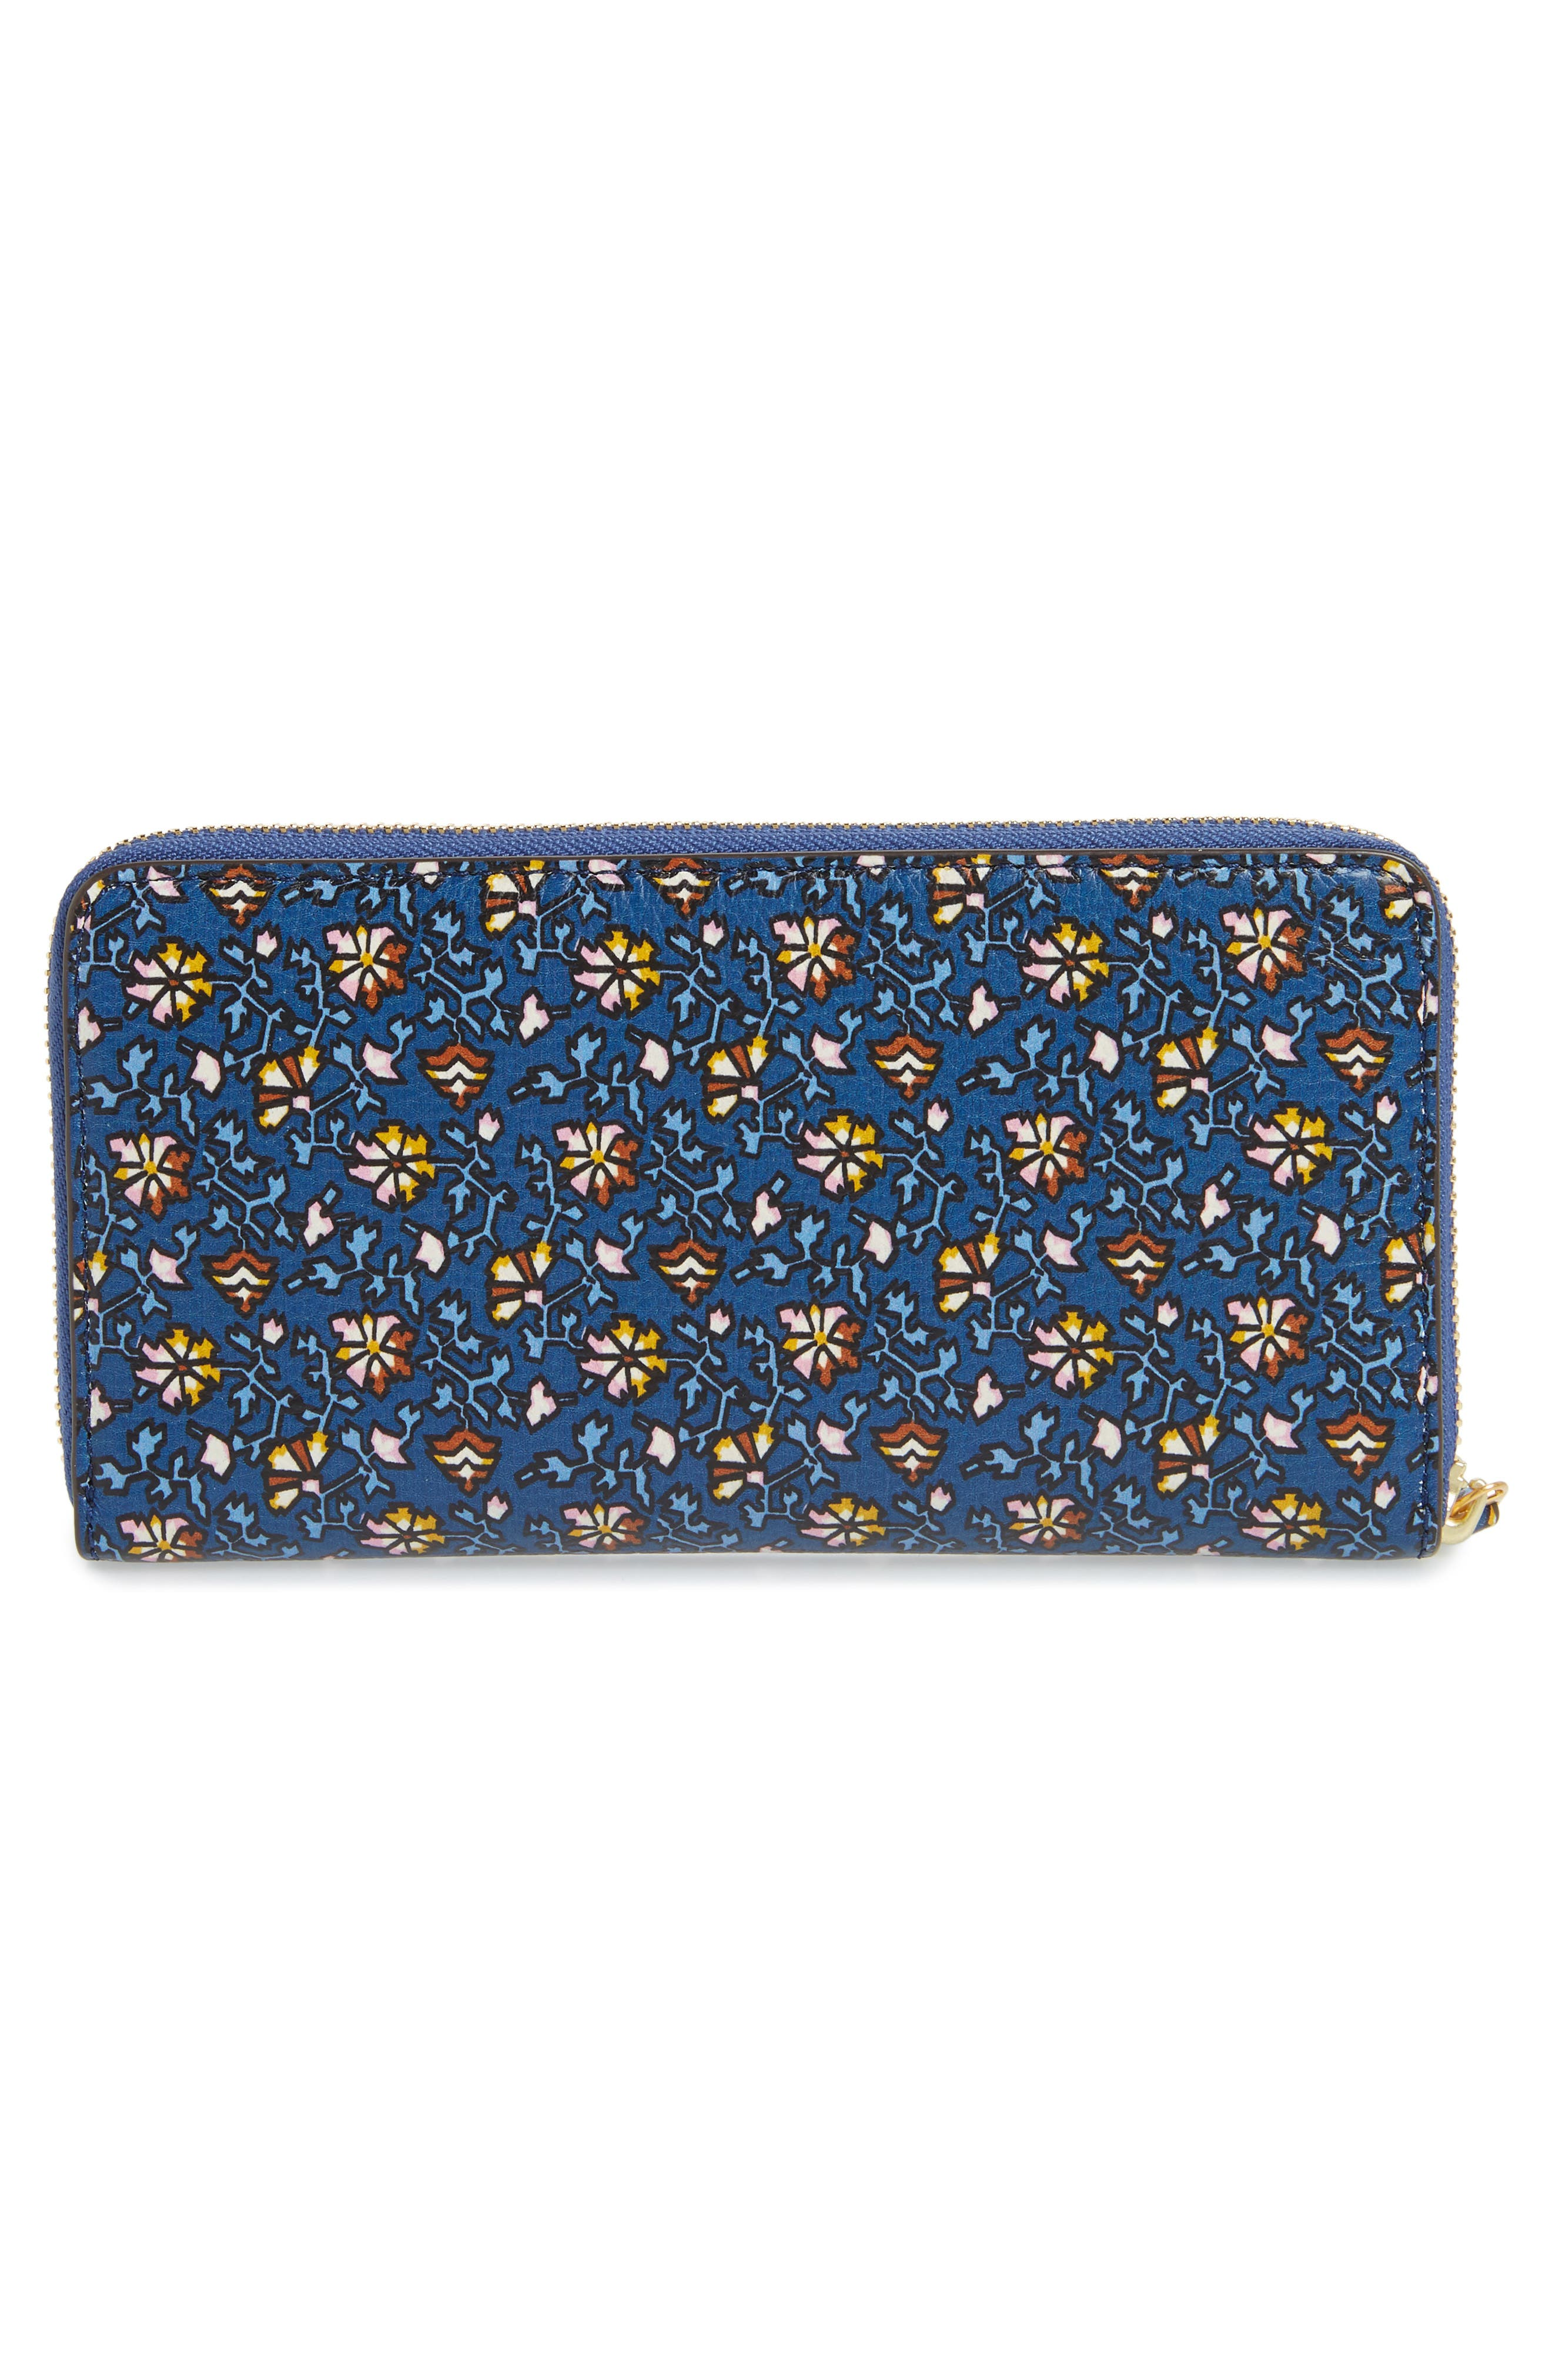 Floral Print Leather Zip Around Wallet,                             Alternate thumbnail 4, color,                             Blue Wild Pansy